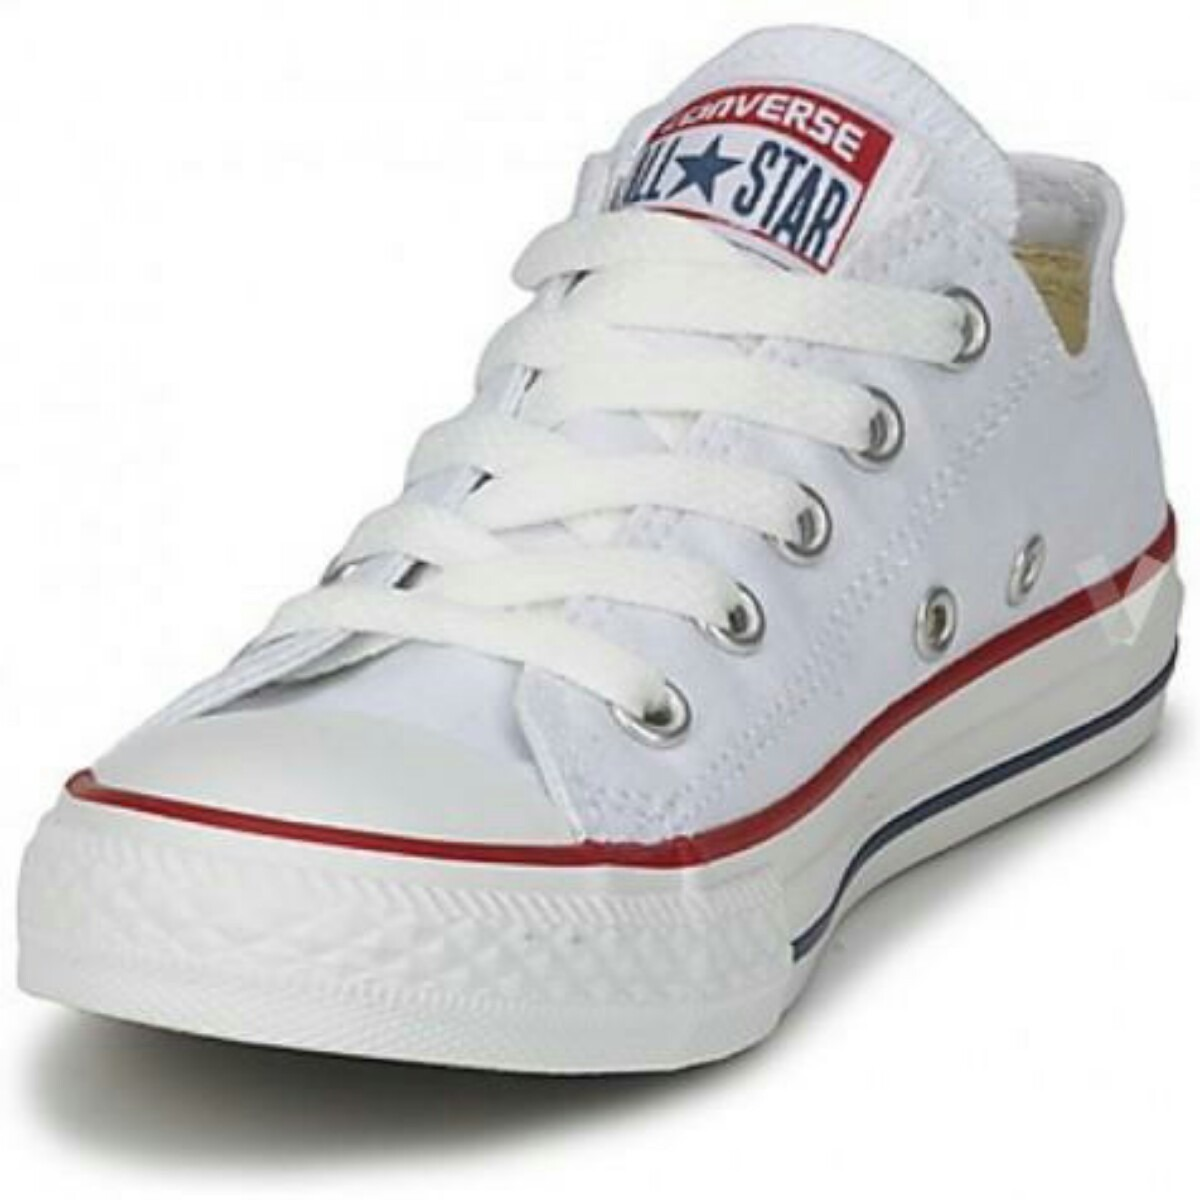 Converse Originales Blancas fundegue.es